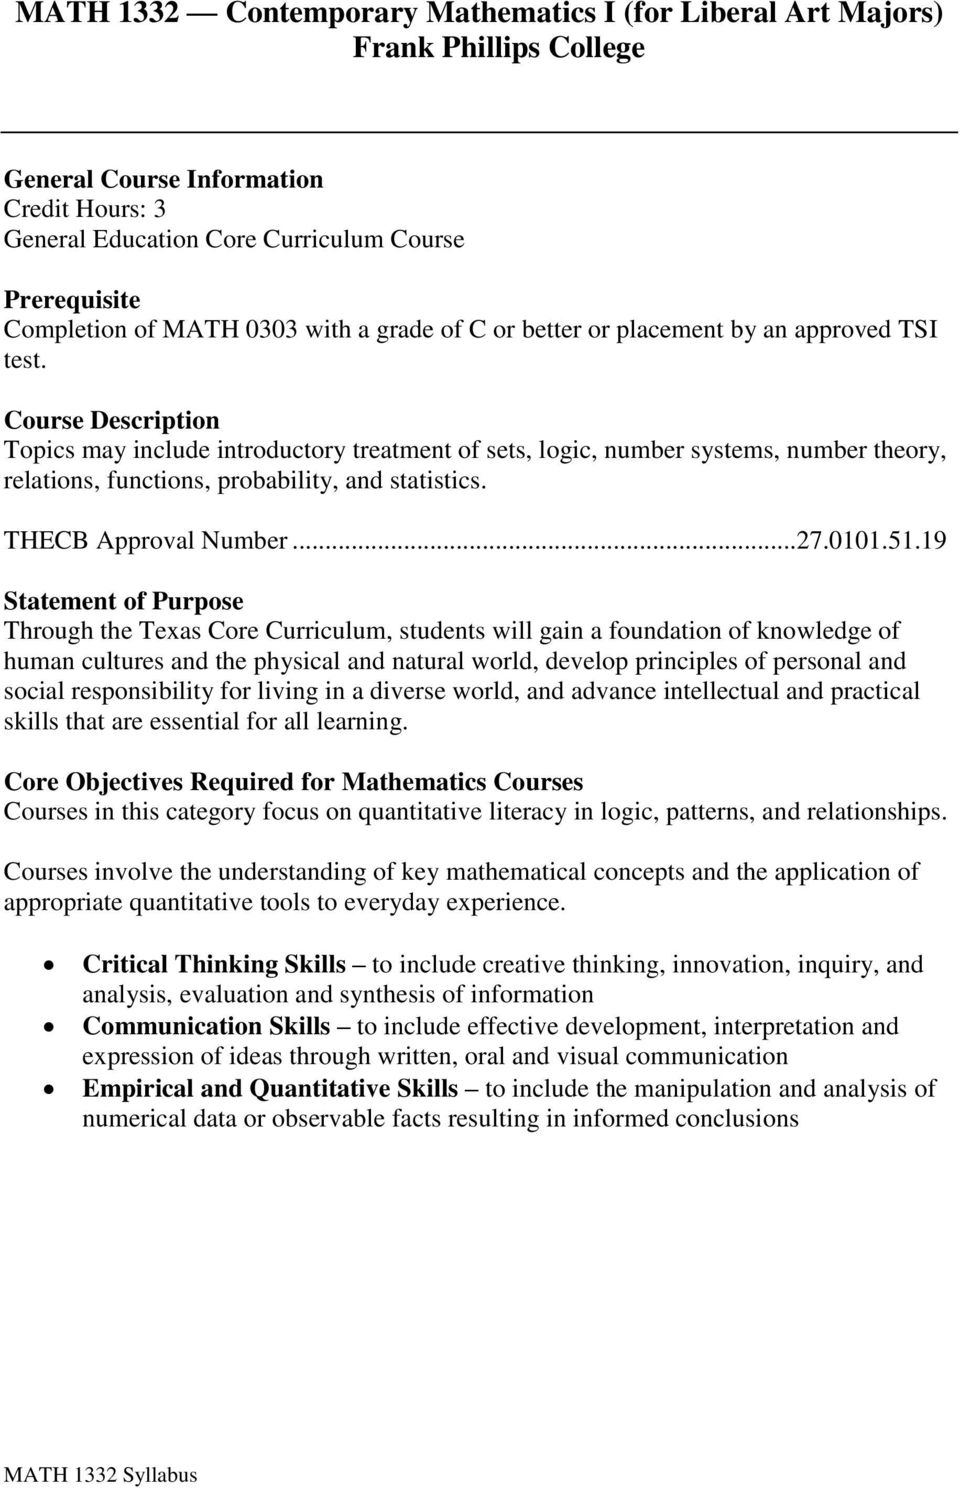 Course Description Topics may include introductory treatment of sets, logic, number systems, number theory, relations, functions, probability, and statistics. THECB Approval Number...27.0101.51.